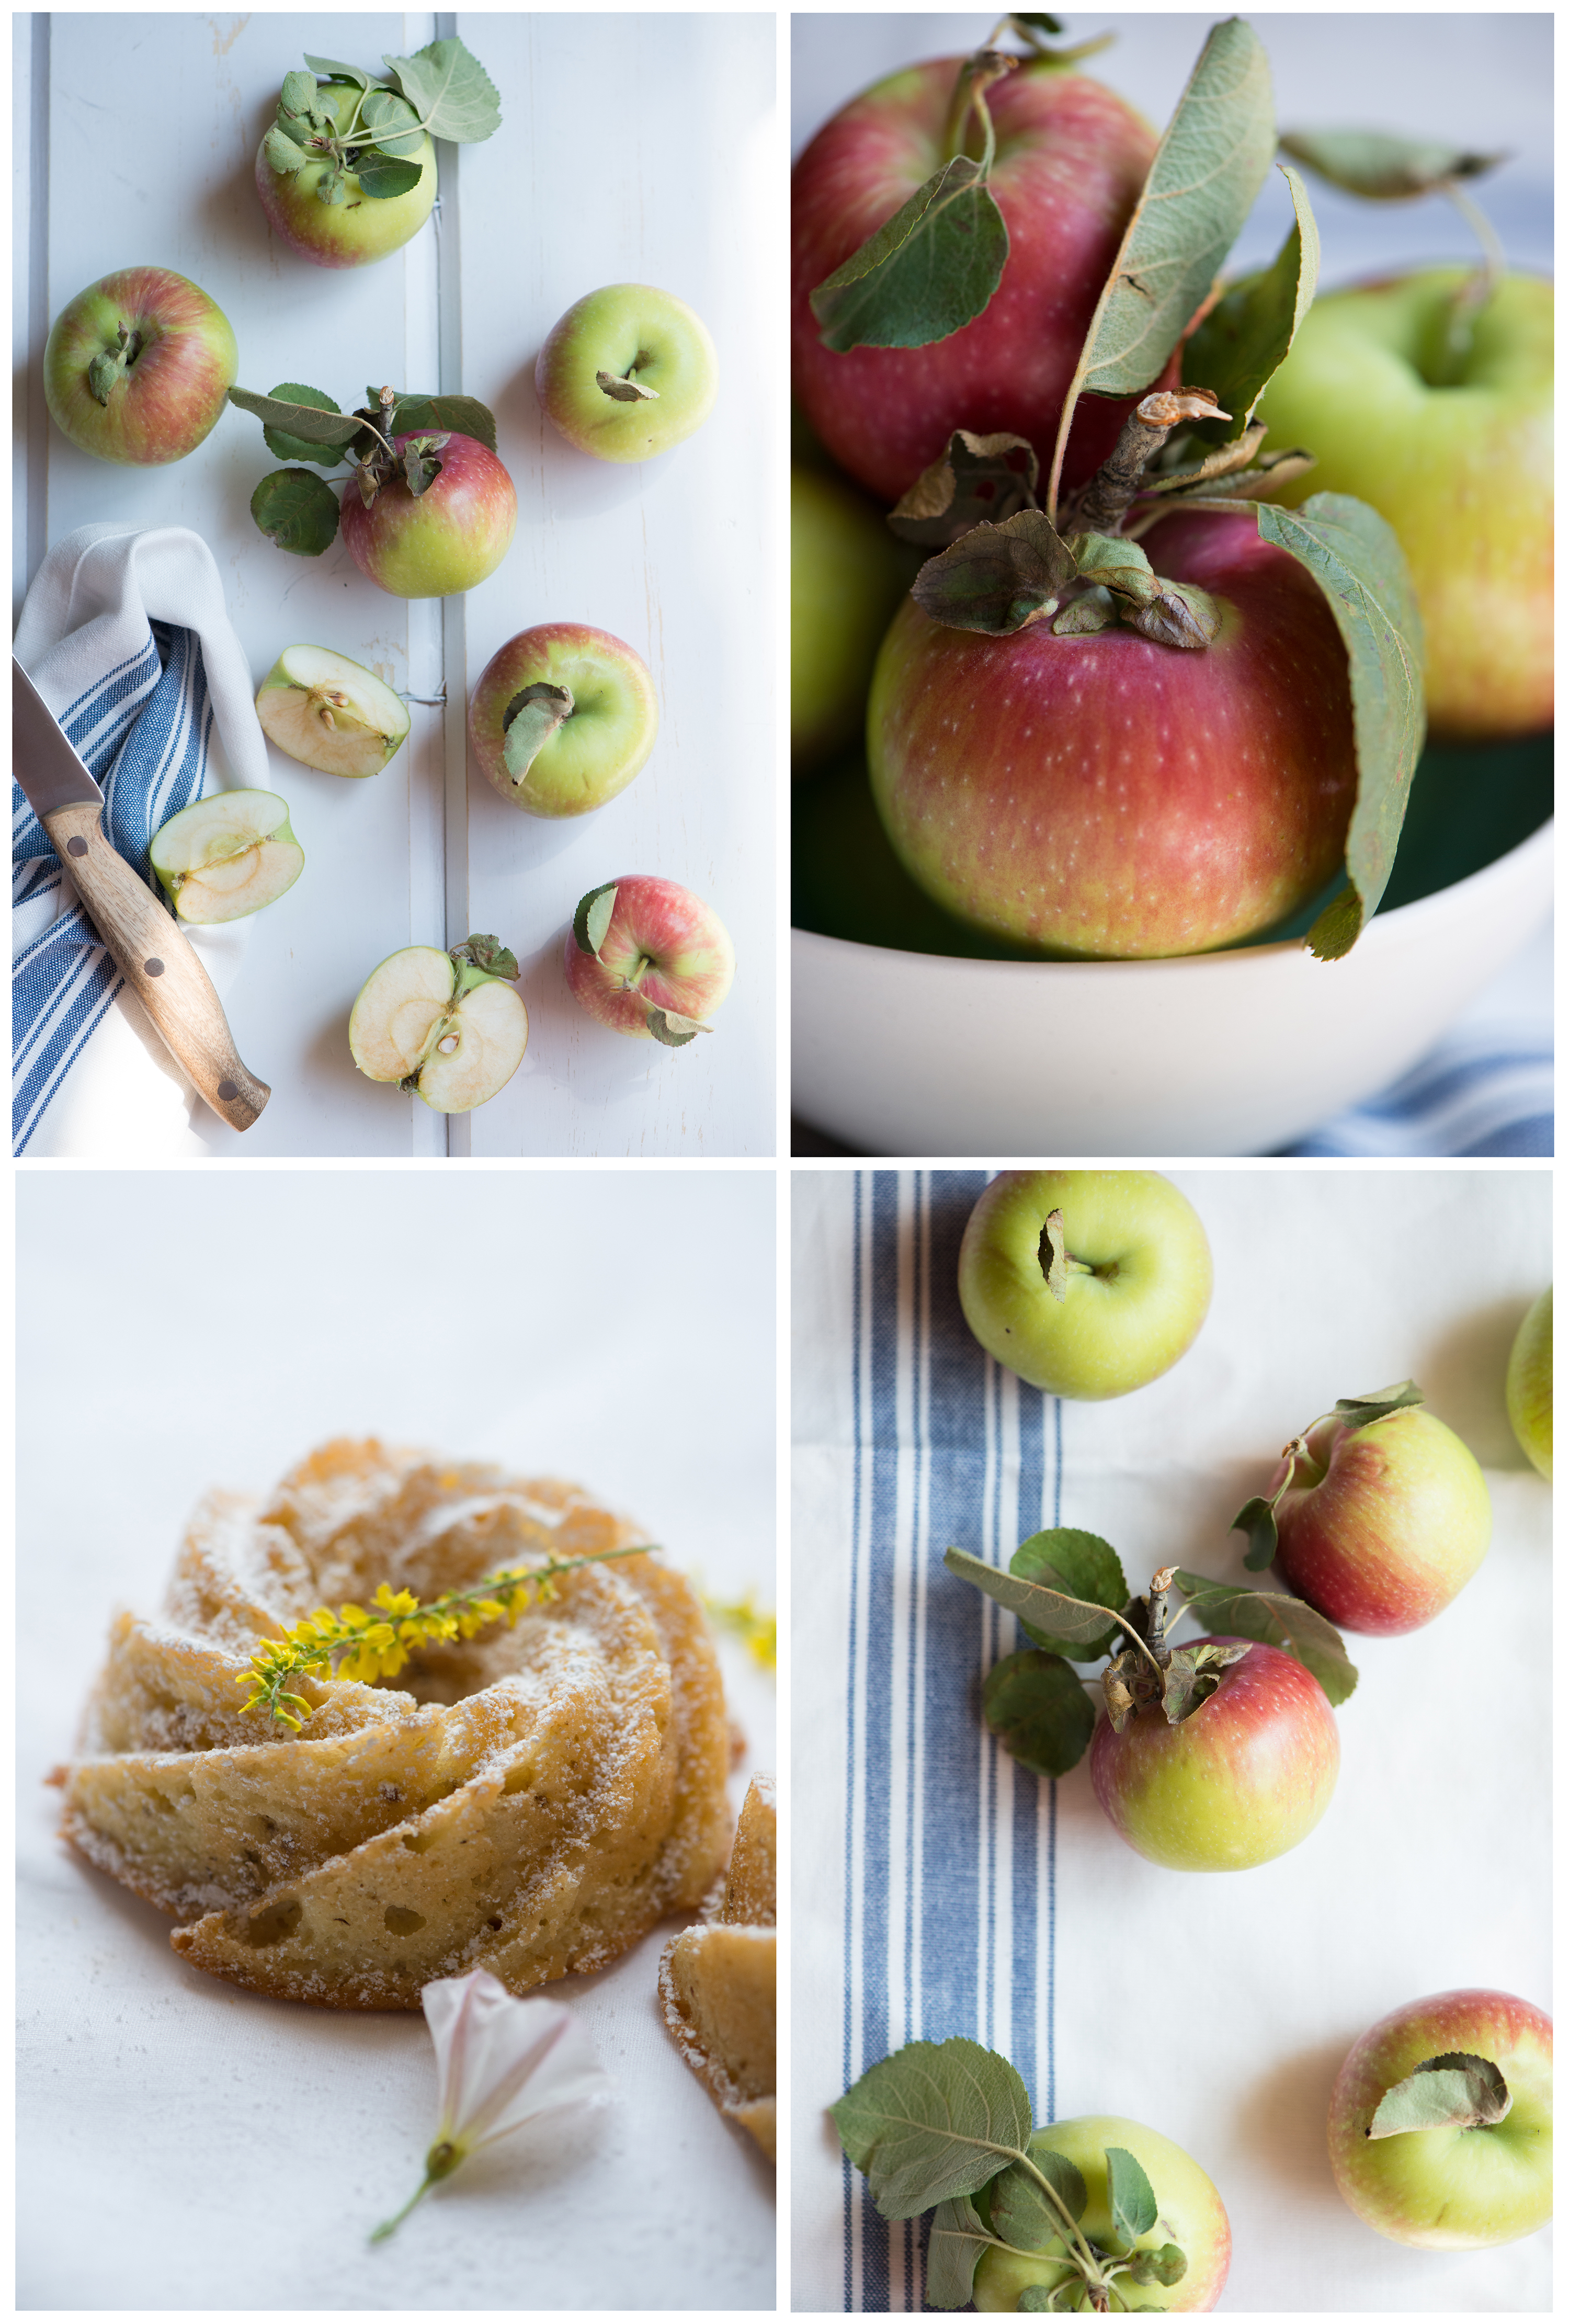 Summertime Apples | Now, Forager | Teresa Floyd Photography